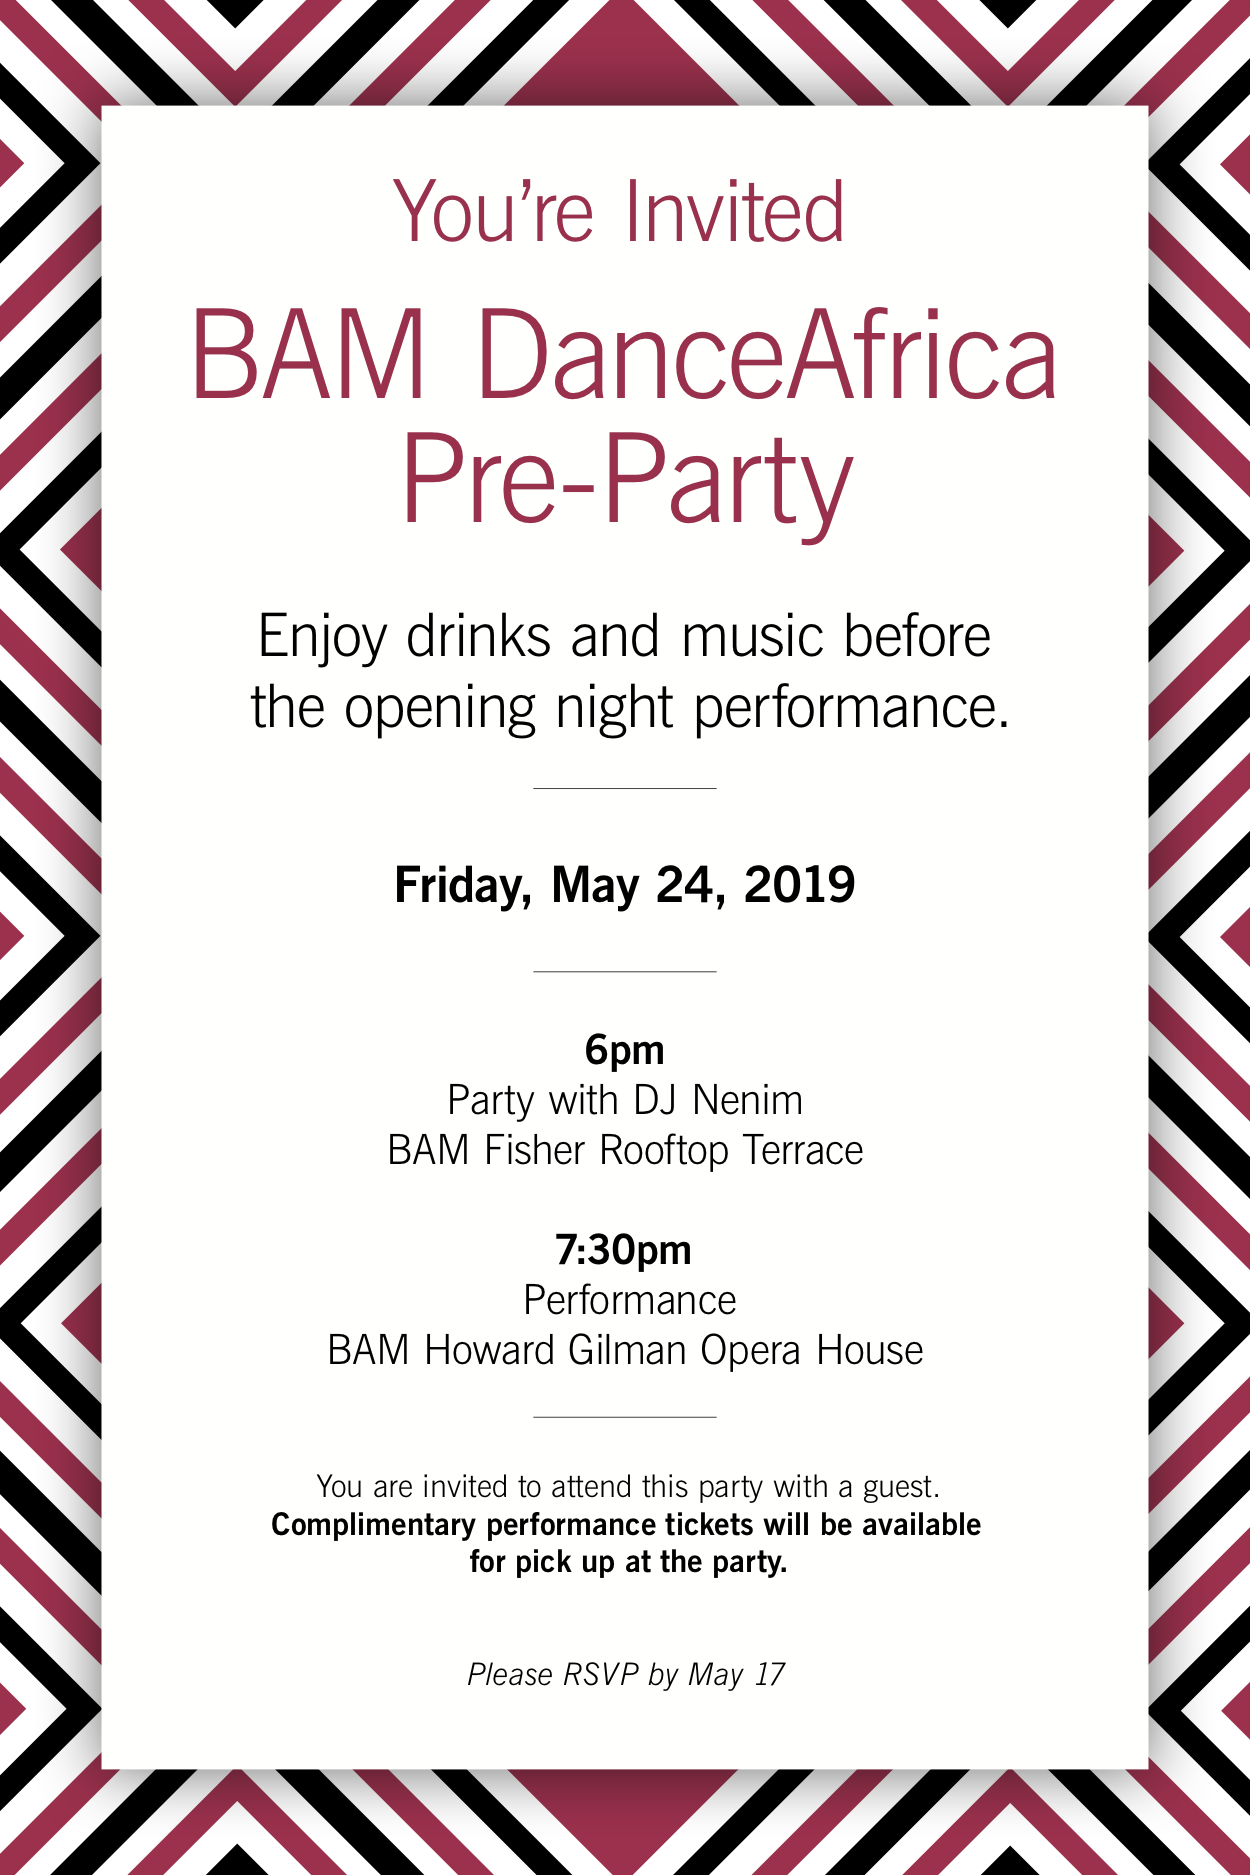 DanceAfrica PreParty Invite.png